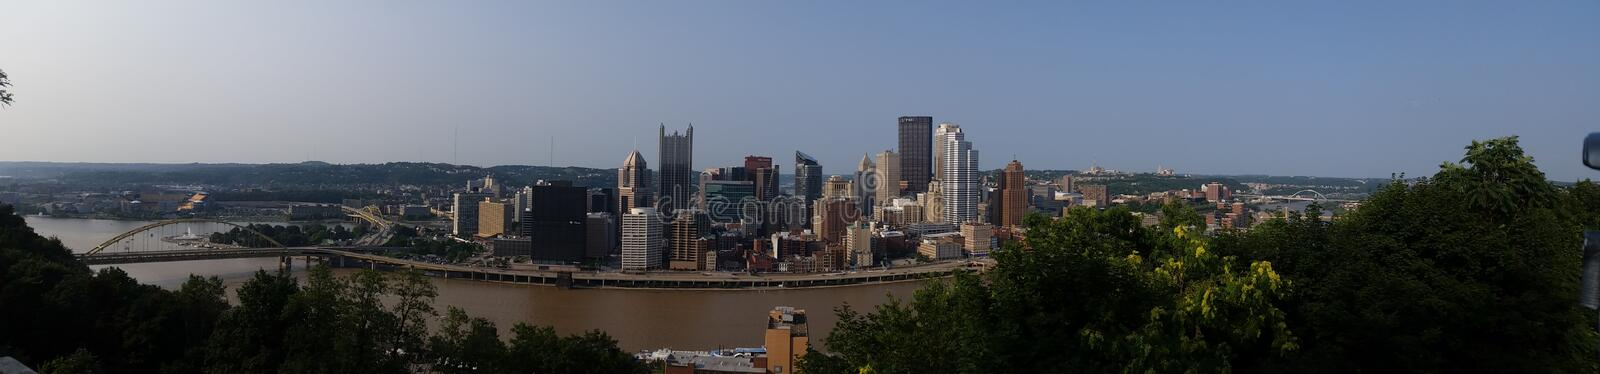 Pittsburgh Pennsylvania royalty free stock images